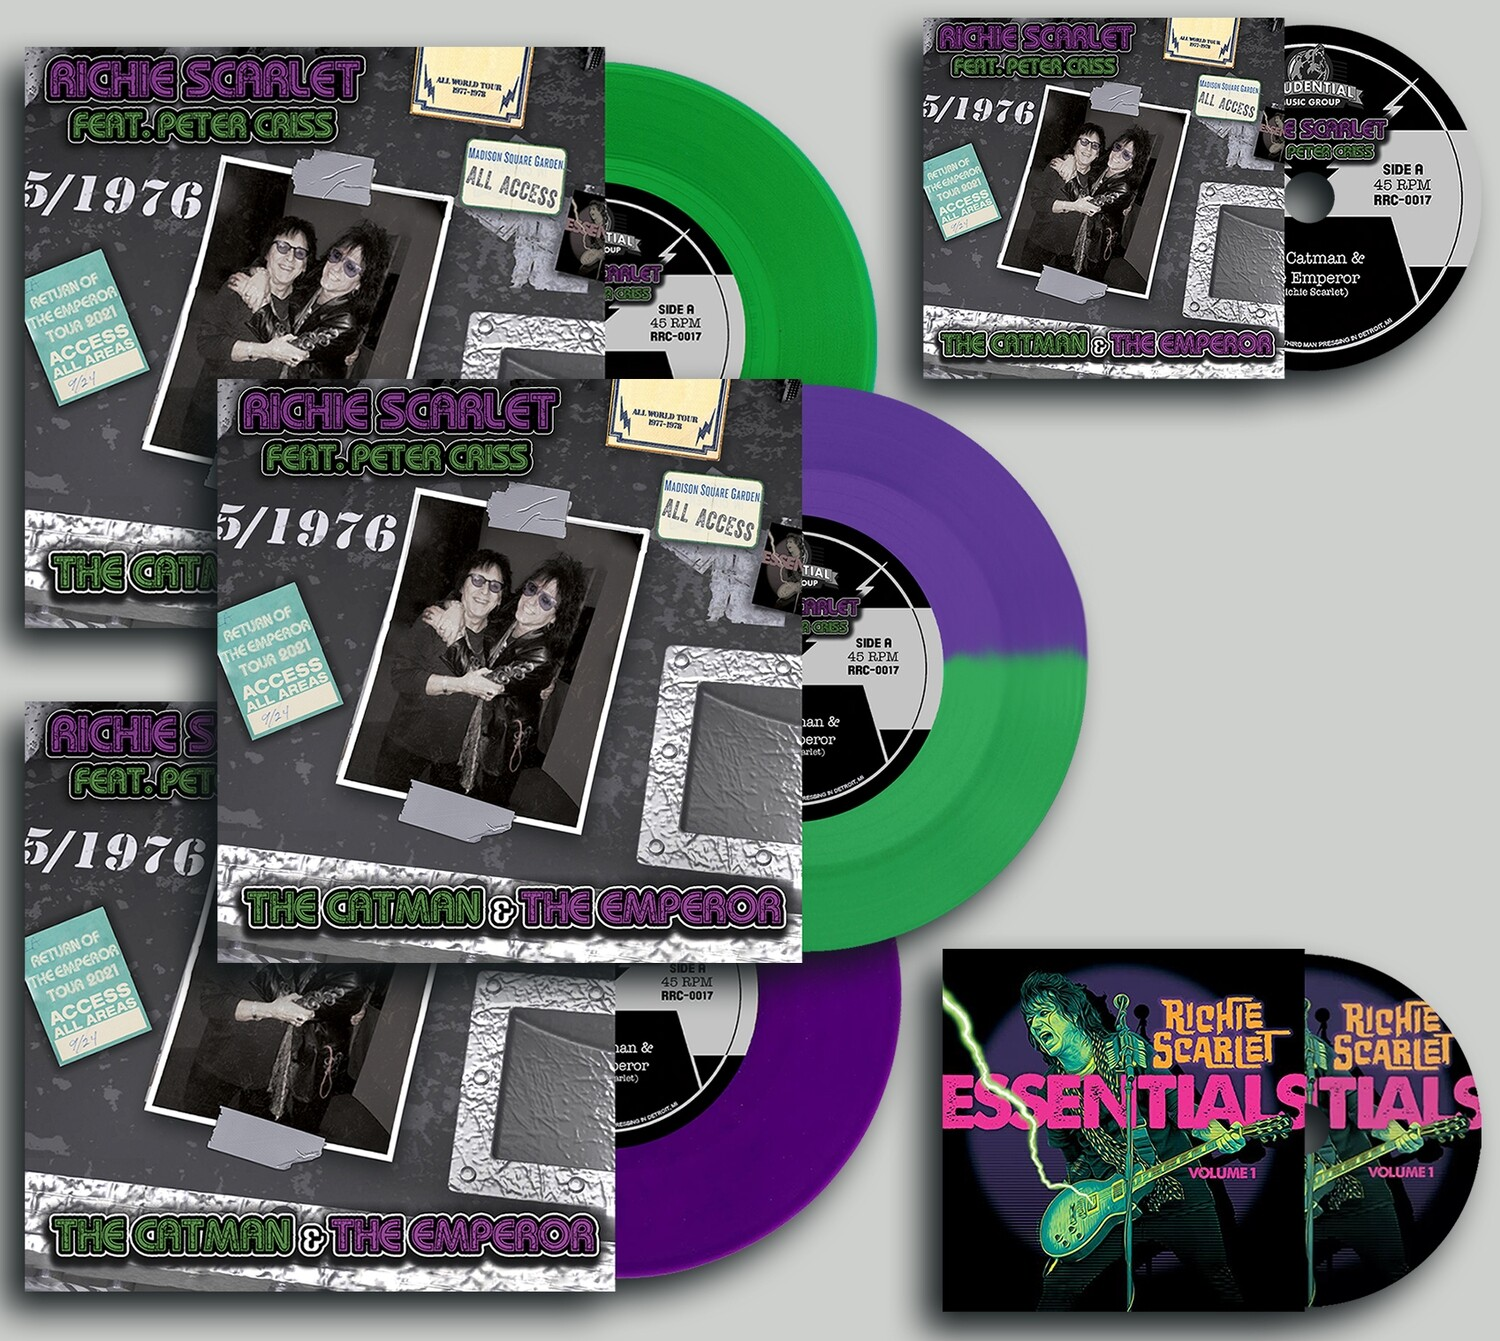 """Richie Scarlet Feat. Peter Criss """"The Catman & The Emperor"""" - Emperor's Package (PRE-ORDER)"""